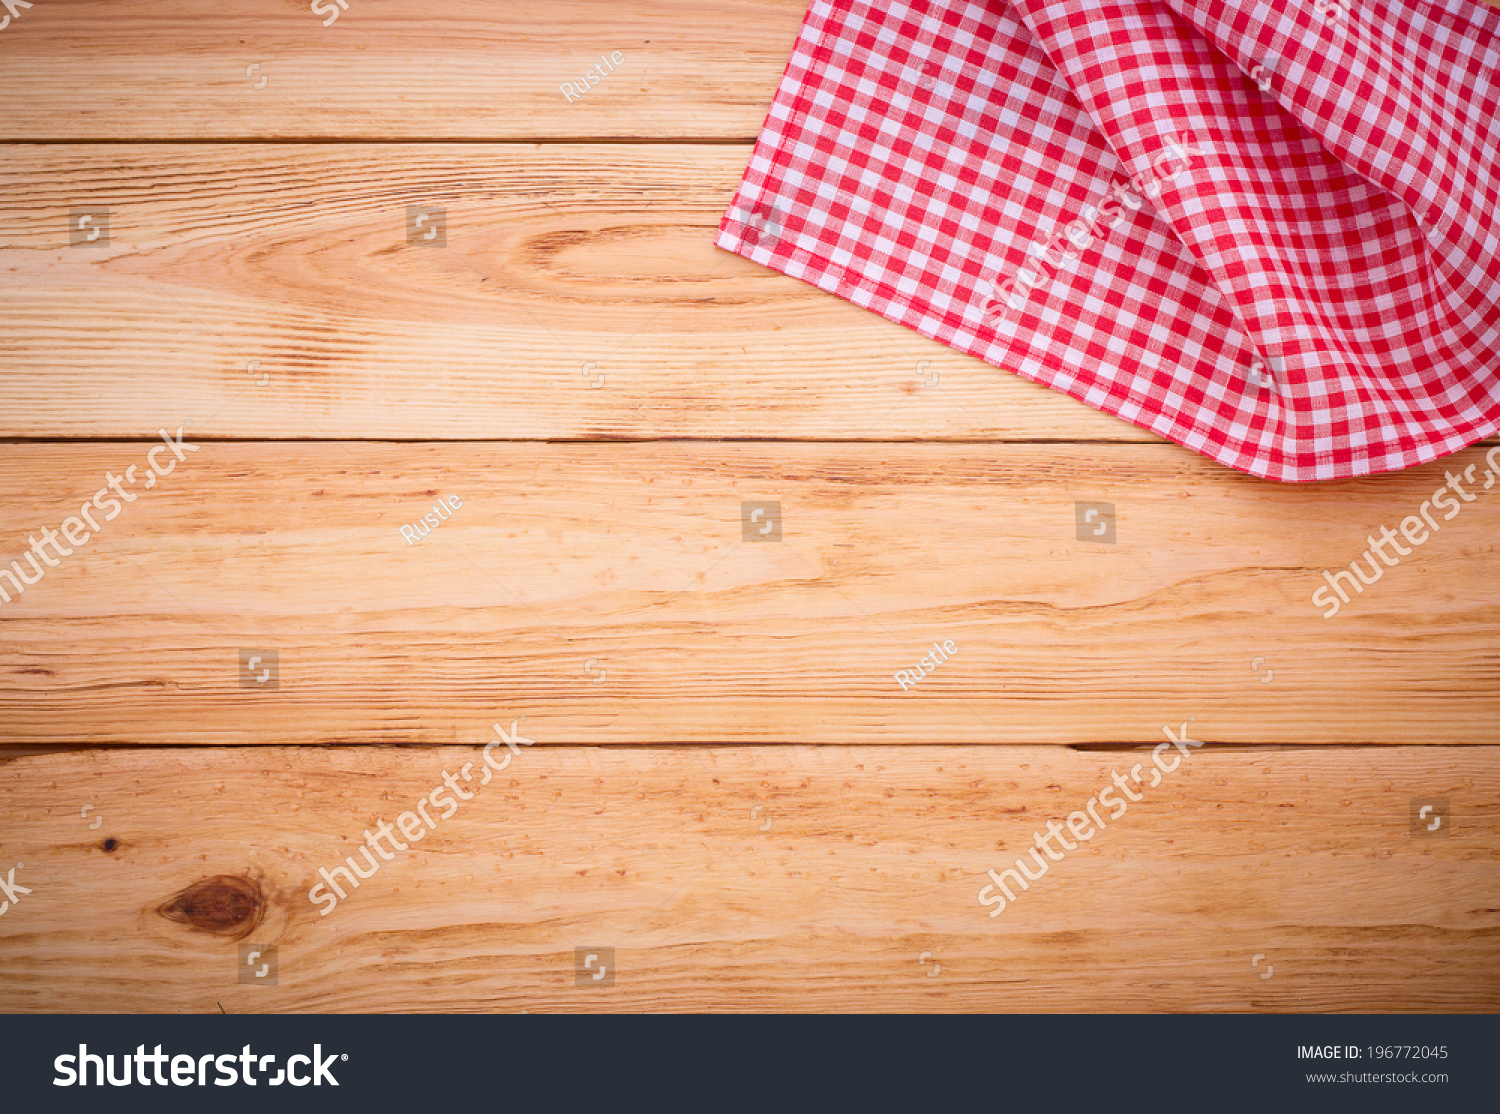 Wood Texture Background. Wooden Table Covered With Tablecloth Cloth  Checkered Plaid Red. View From